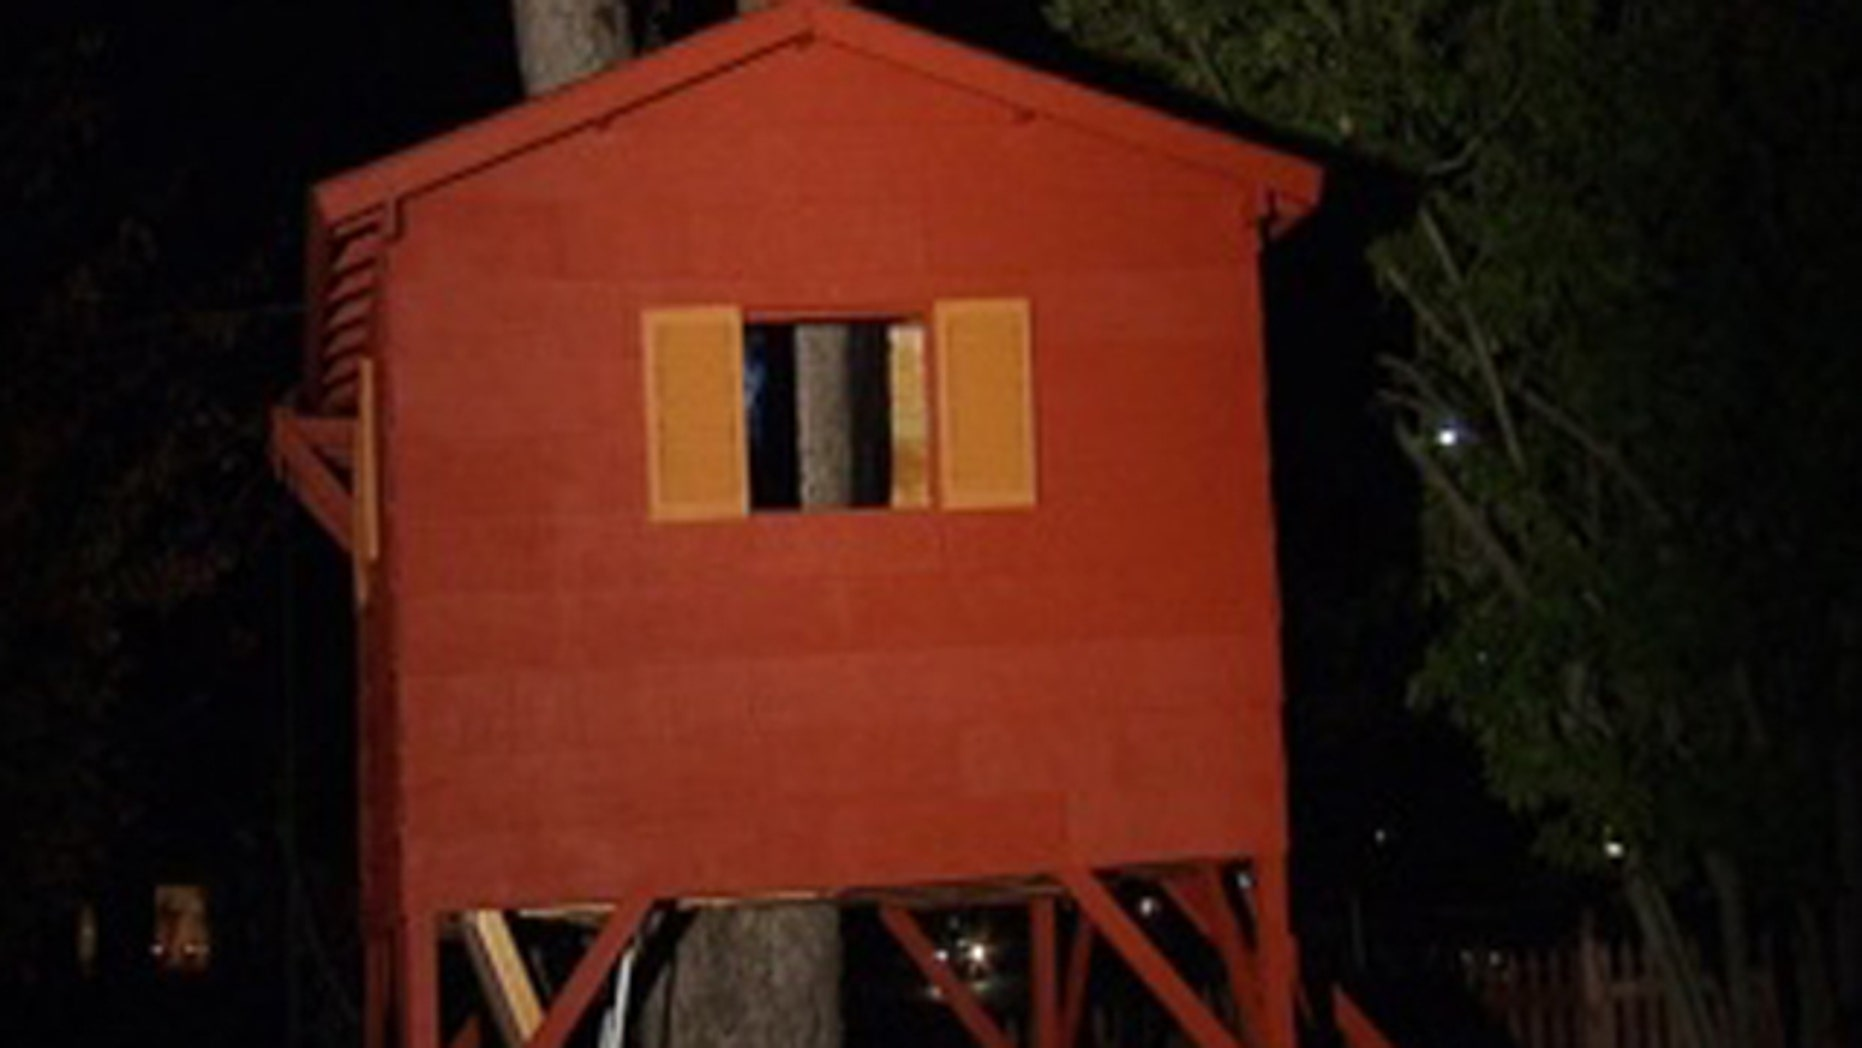 A Virginia dad has won a reprieve from the local zoning board to keep this backyard tree house, a gift to his sons on his return home from serving in Iraq.